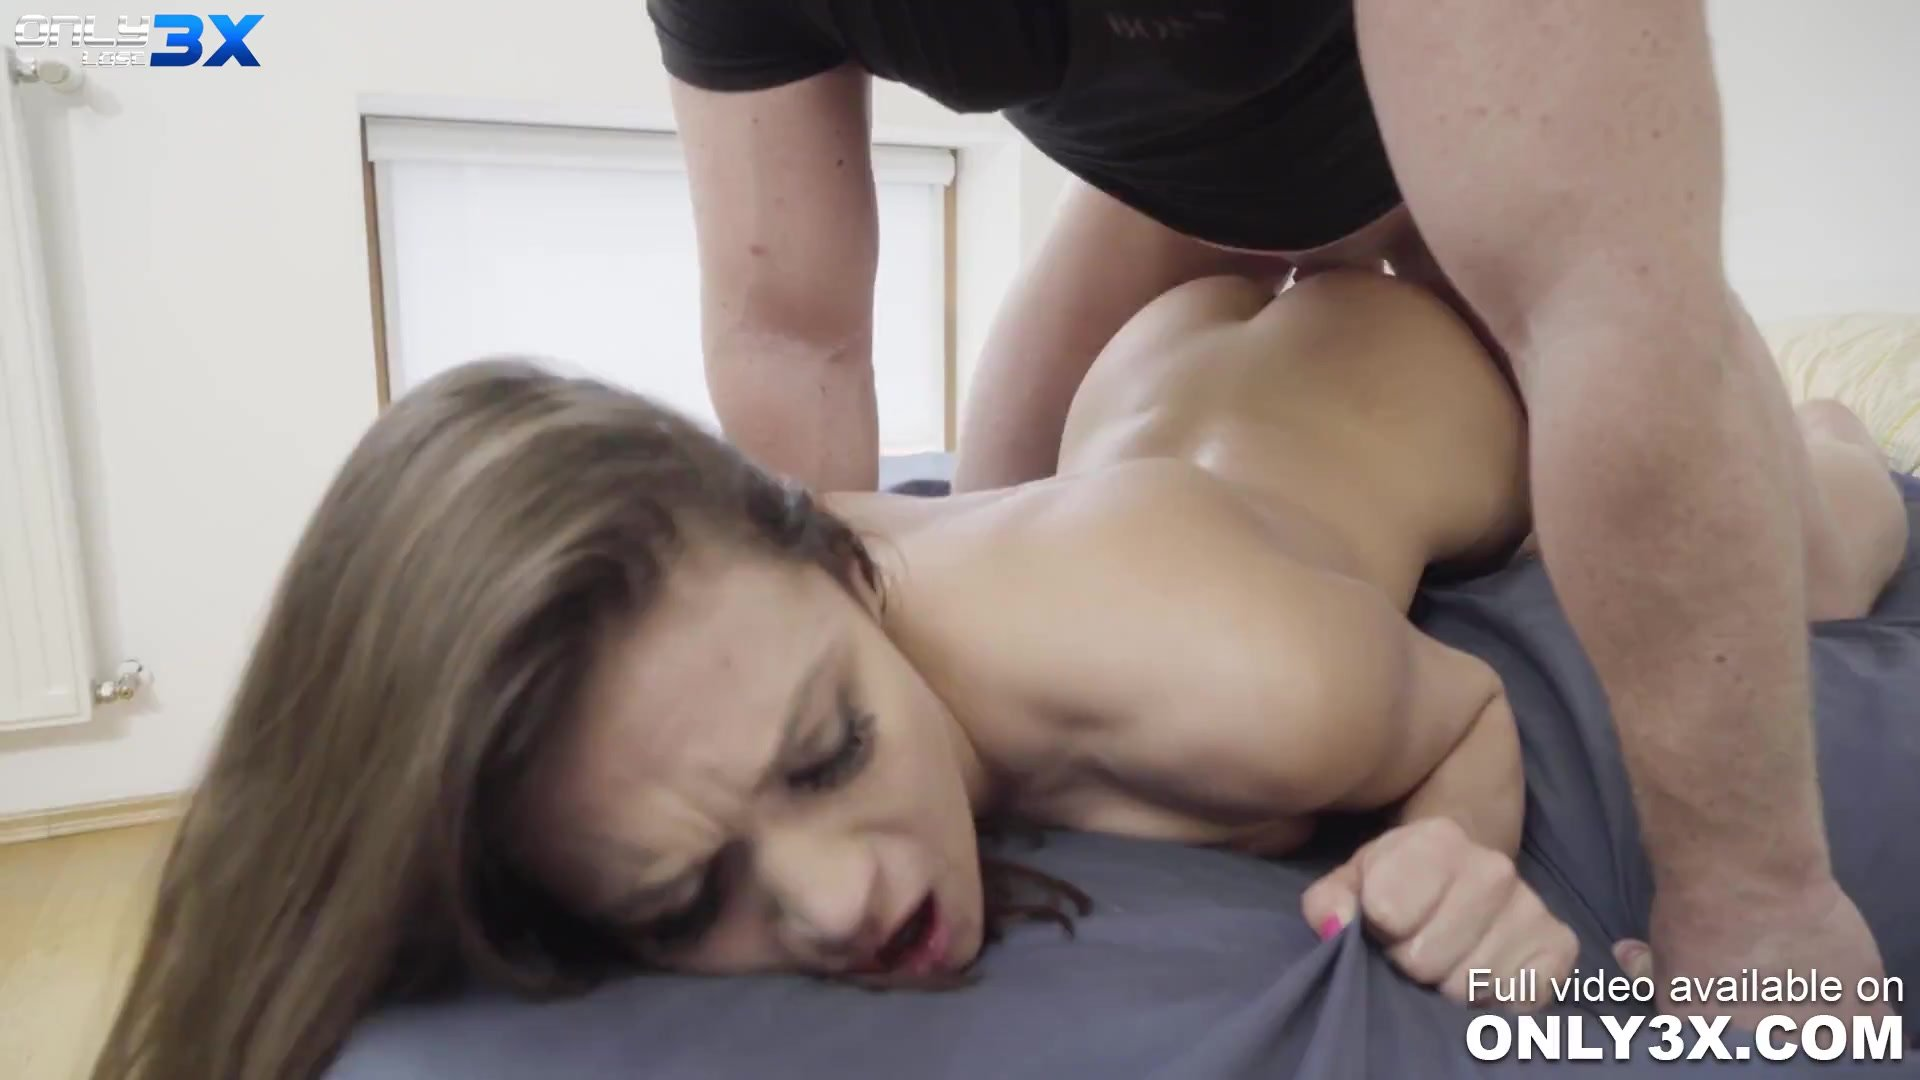 Bombshell Alyssa Reece and Chad for a one-night stand sex - scene by Only3x LOST